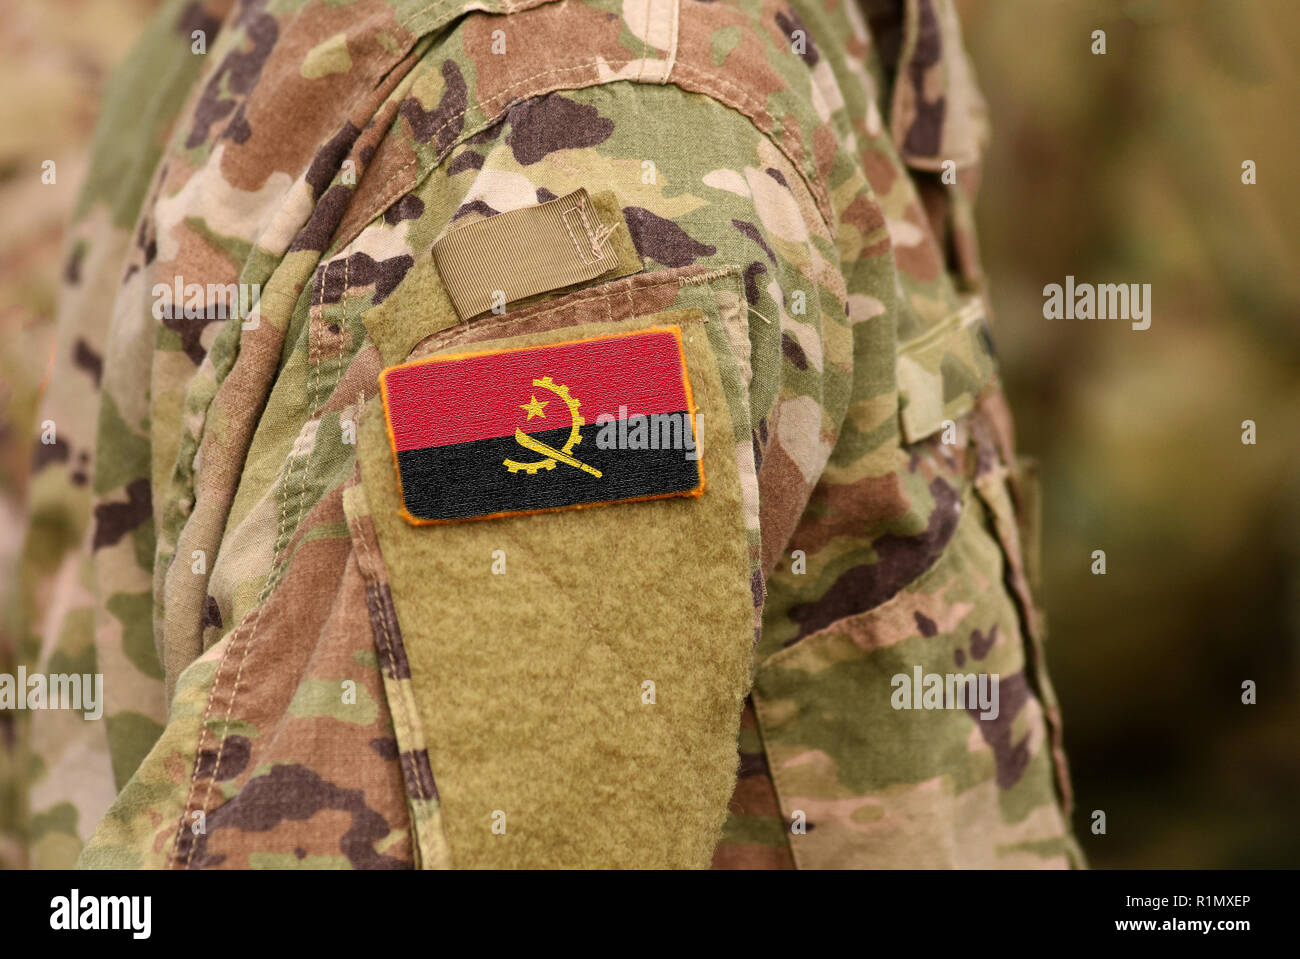 Angola flag on soldiers arm. South Republic of Angola troops (collage) - Stock Image